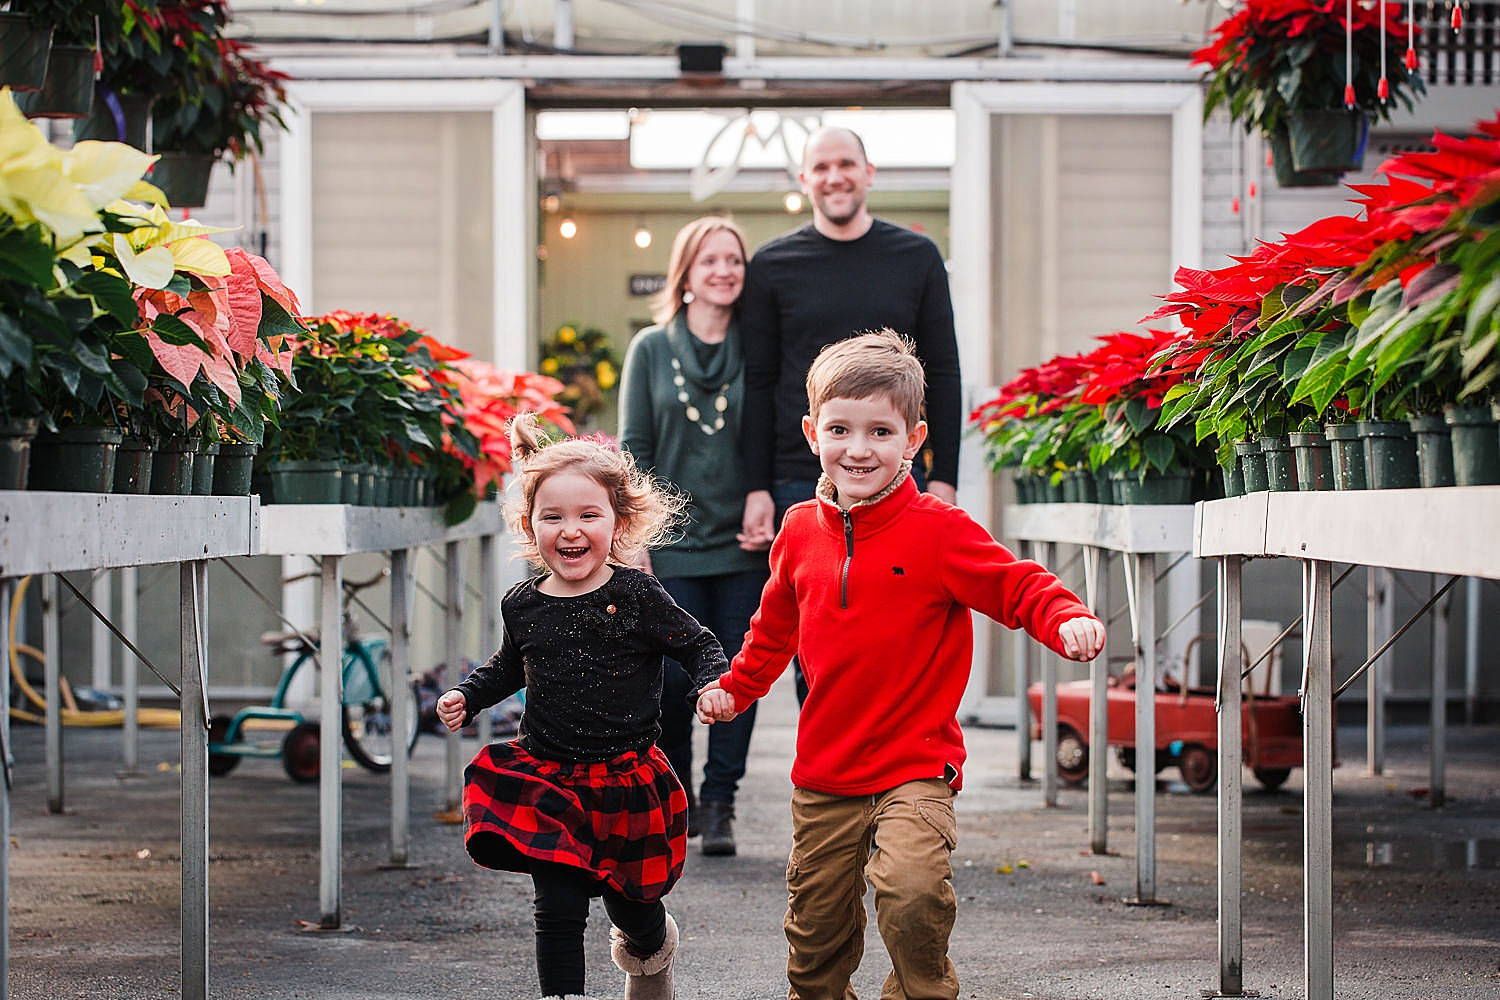 Photo of a boy and a girl holding hands and running through a greenhouse full of poinsettias.